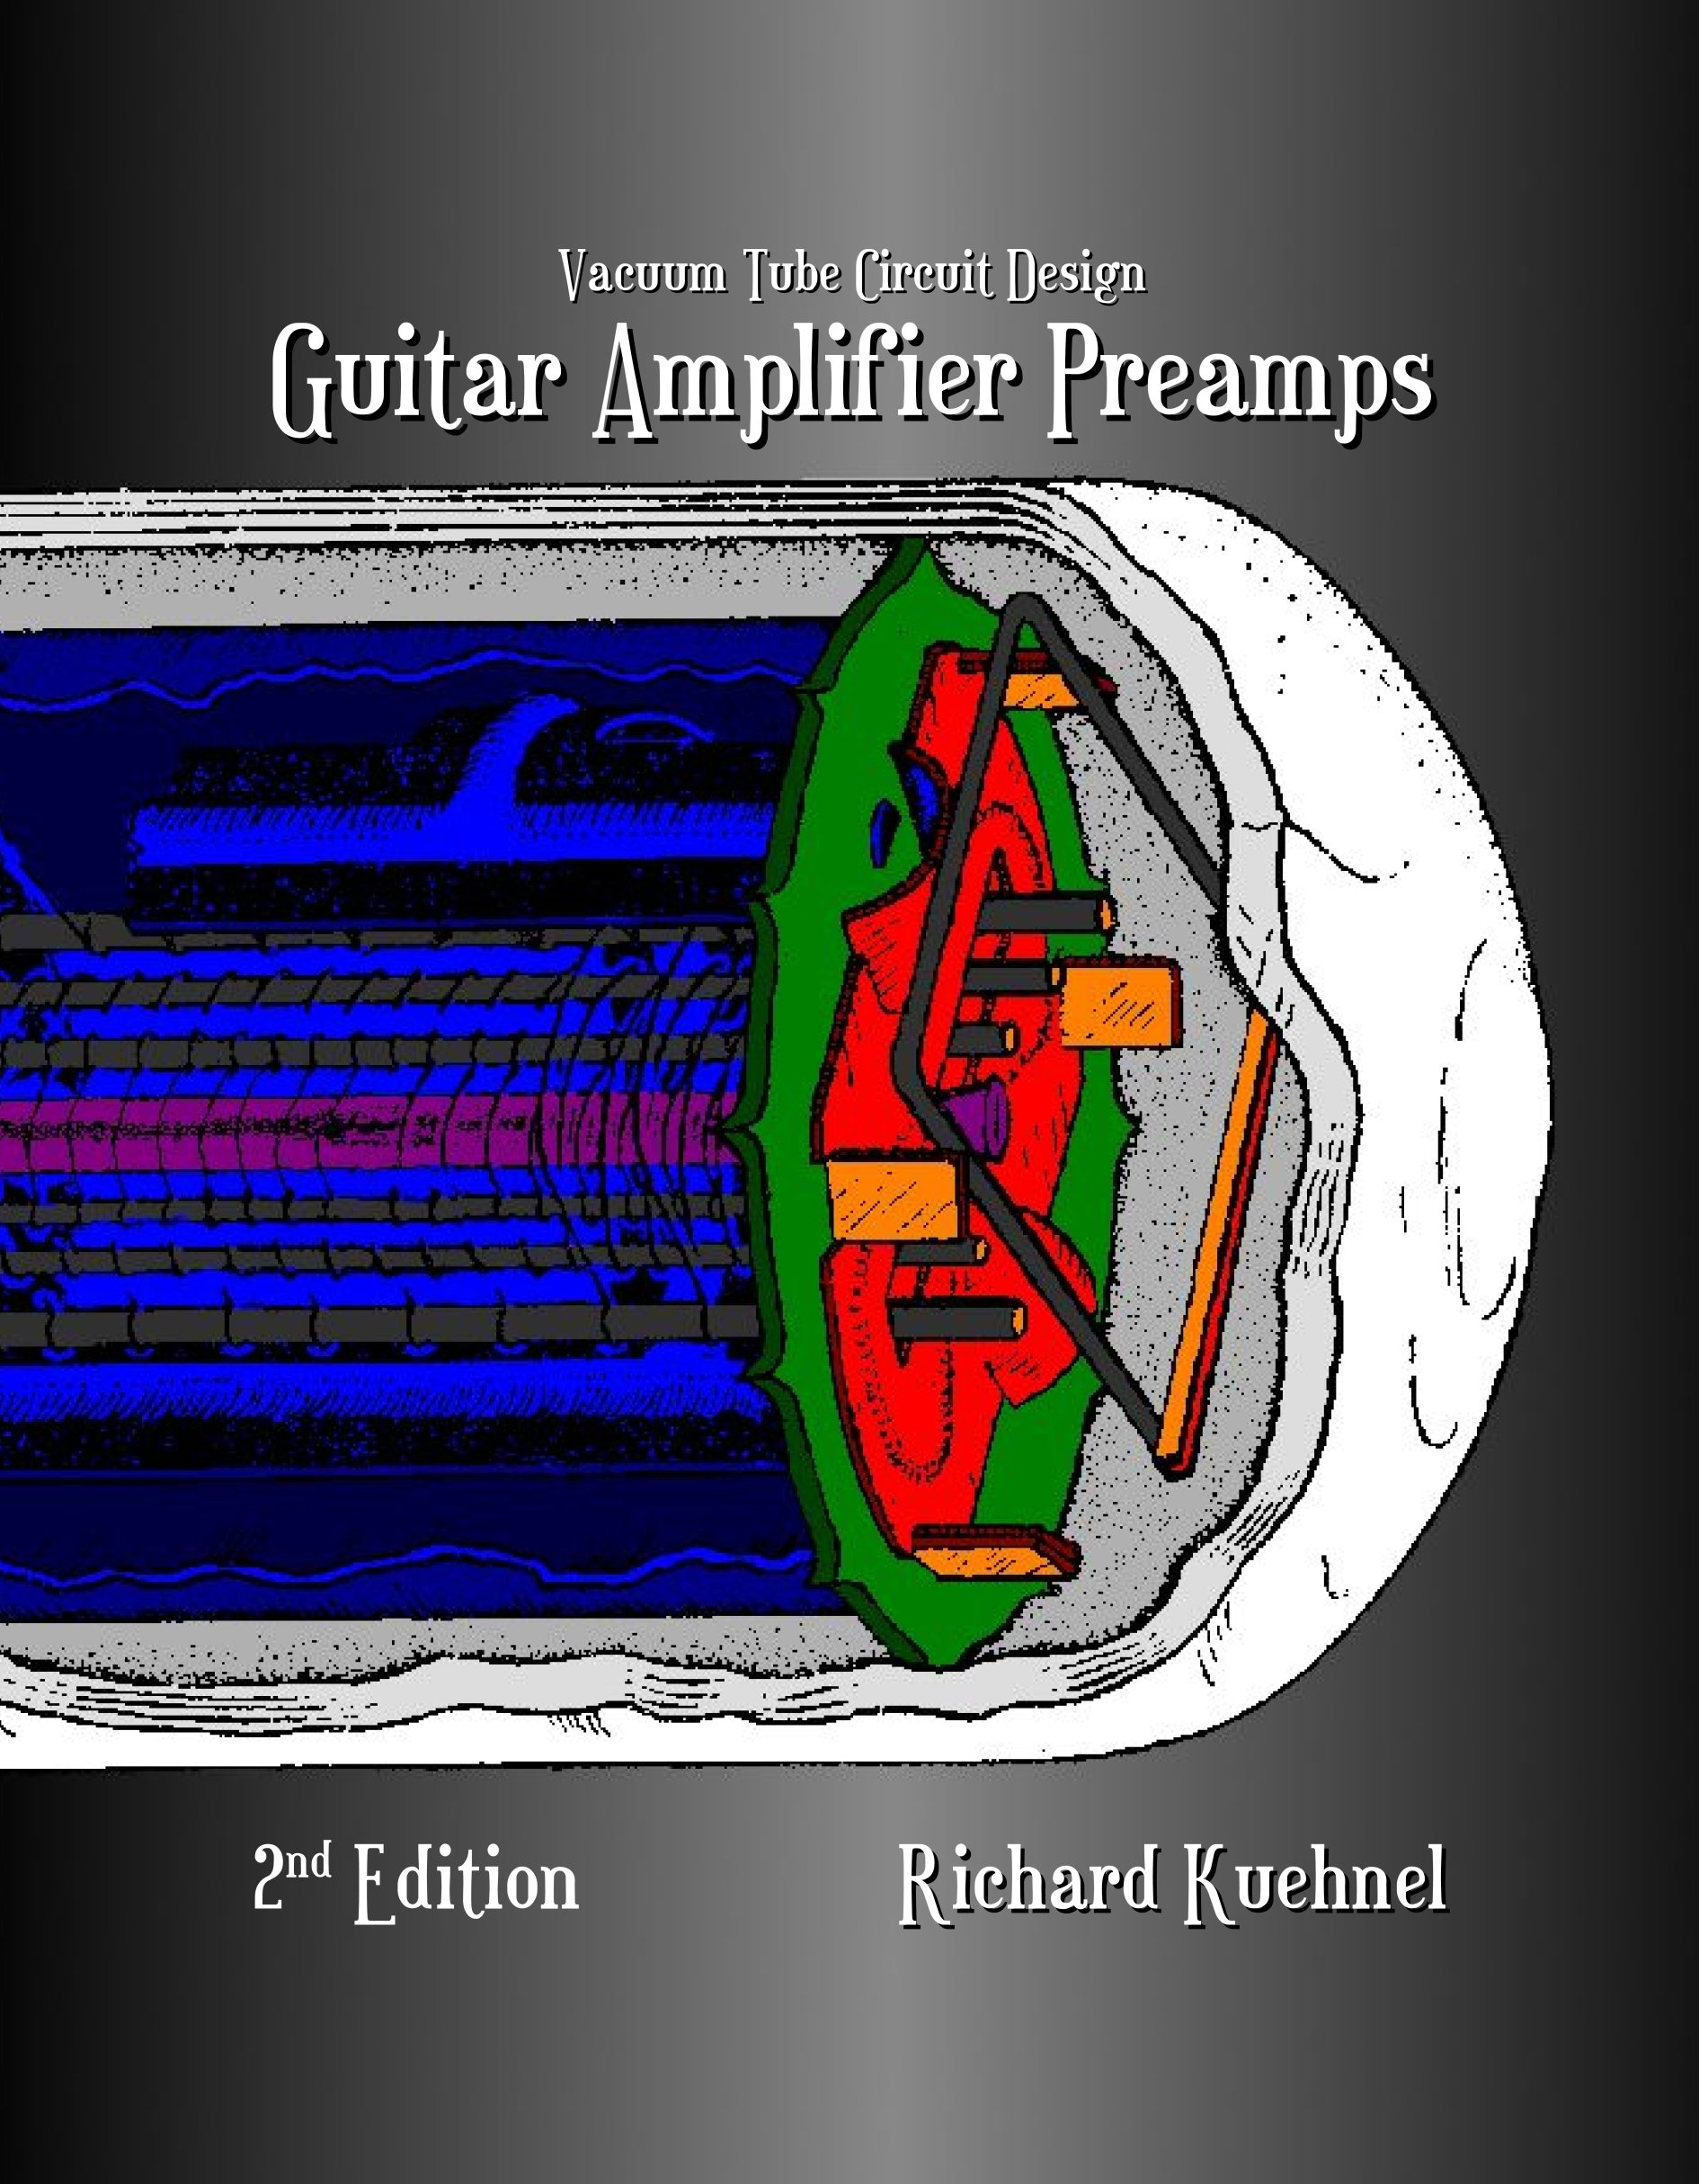 Vacuum Tube Circuit Design Guitar Amplifier Preamps Second Edition Diagram Audio Typical Application Richard Kuehnel 9780976982265 Books